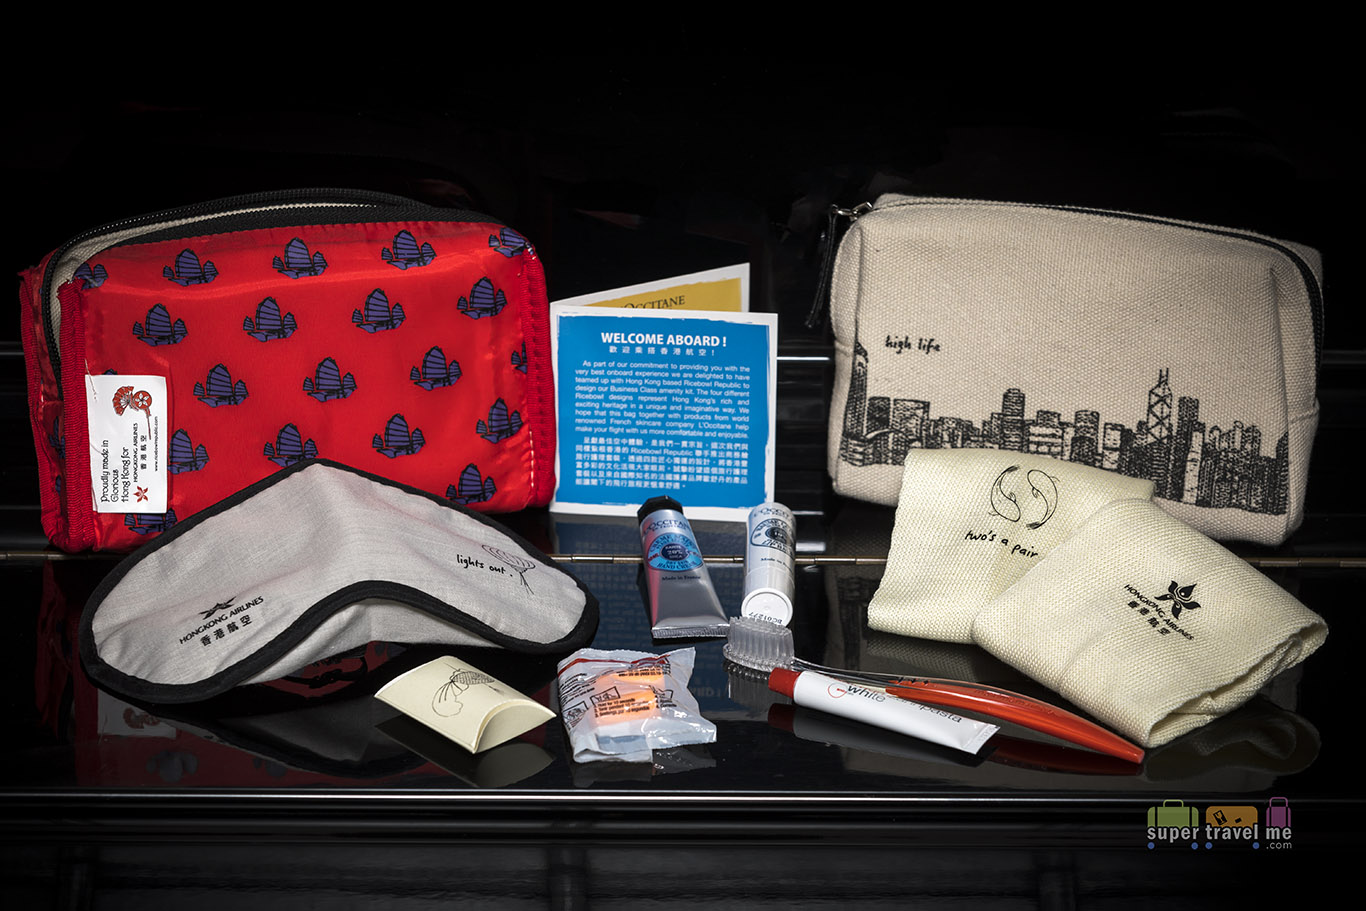 Transportation Collectables Tap Airlines Aviation Flight Traveling Amenity Kit On A Tissue Bag # Empty Bag In-flight Gifts/ Amenity Kits